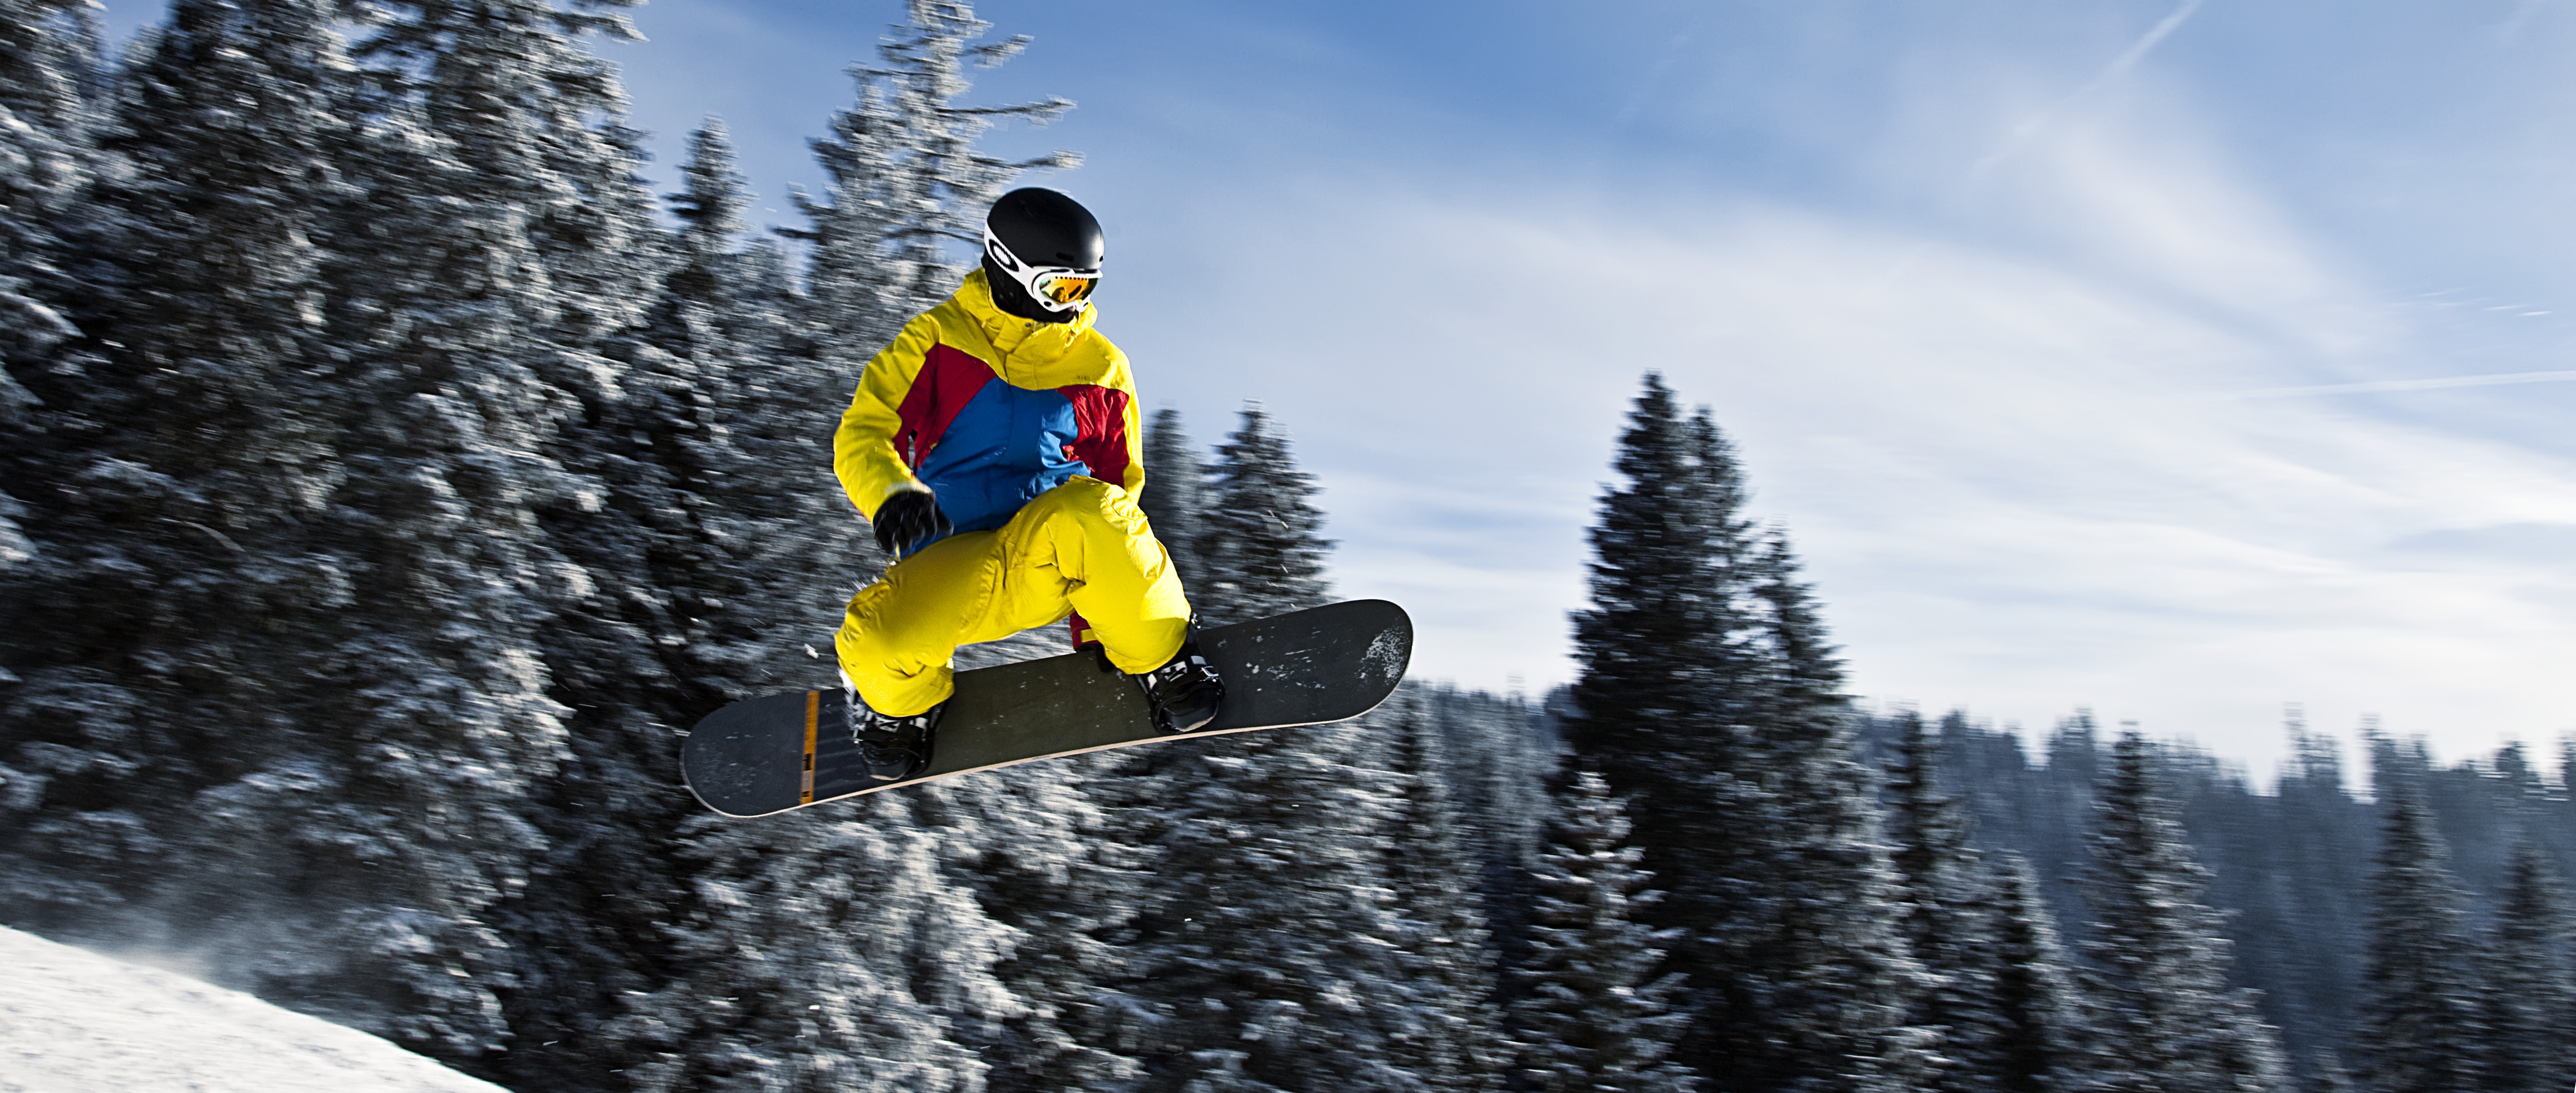 Snowboarding High Definition Wallpapers